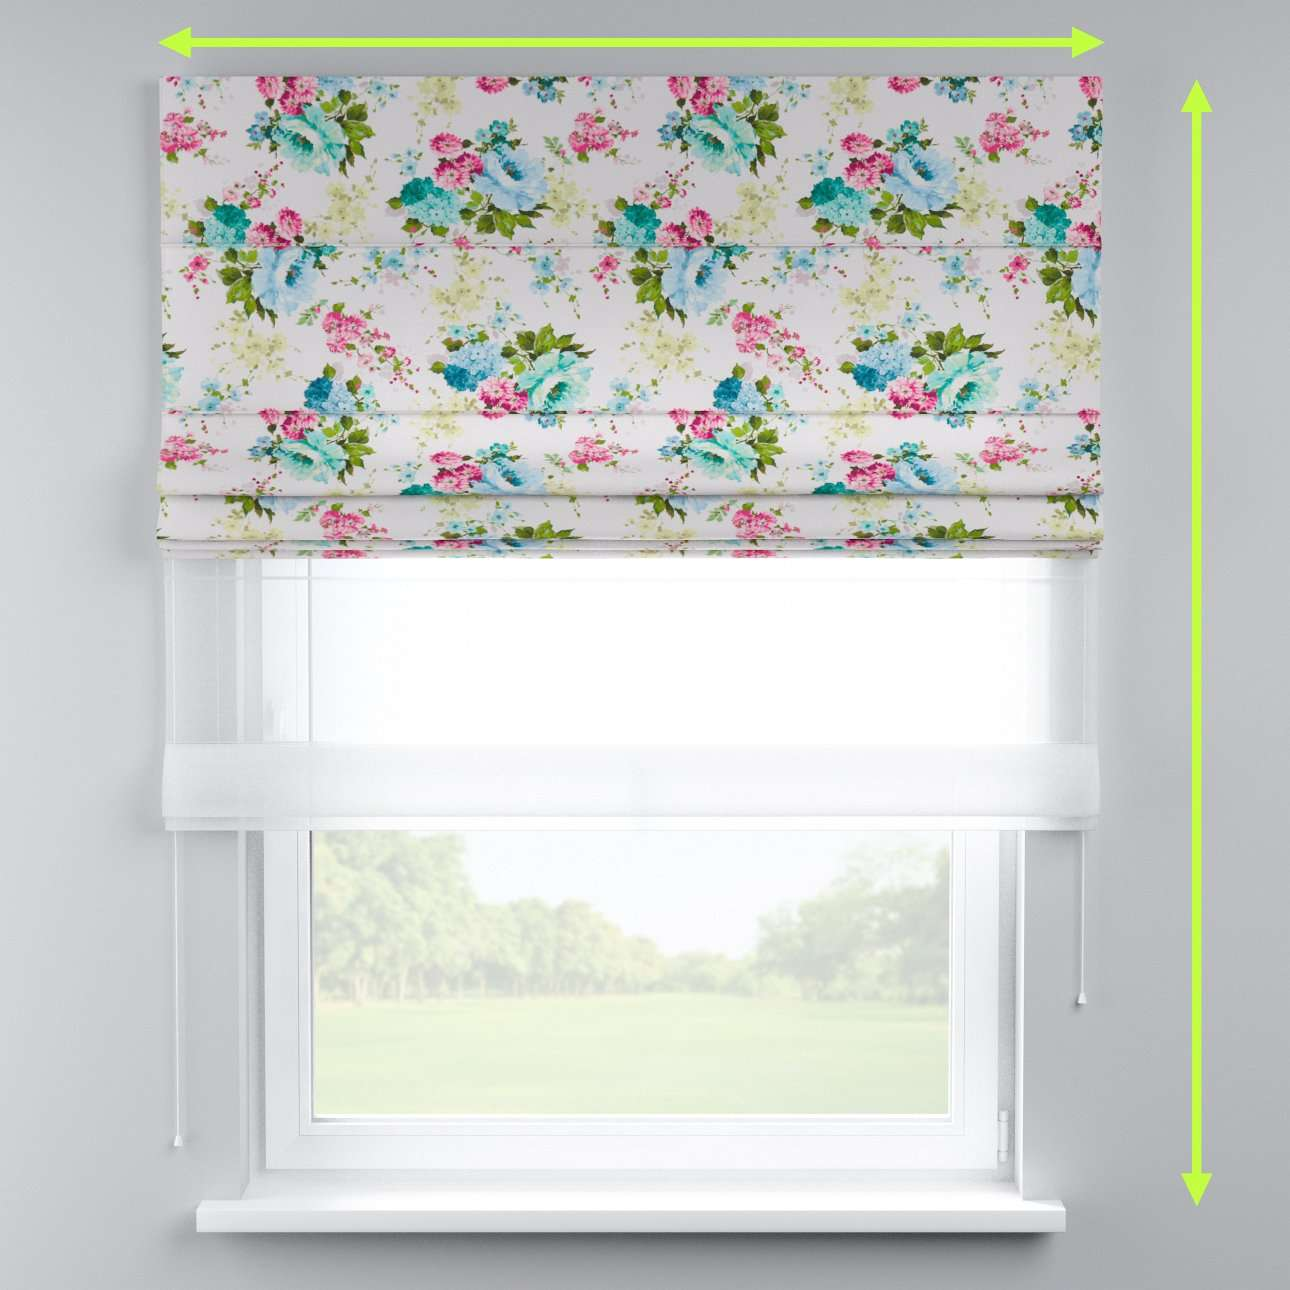 Voile and fabric roman blind (DUO II) in collection Monet, fabric: 140-02